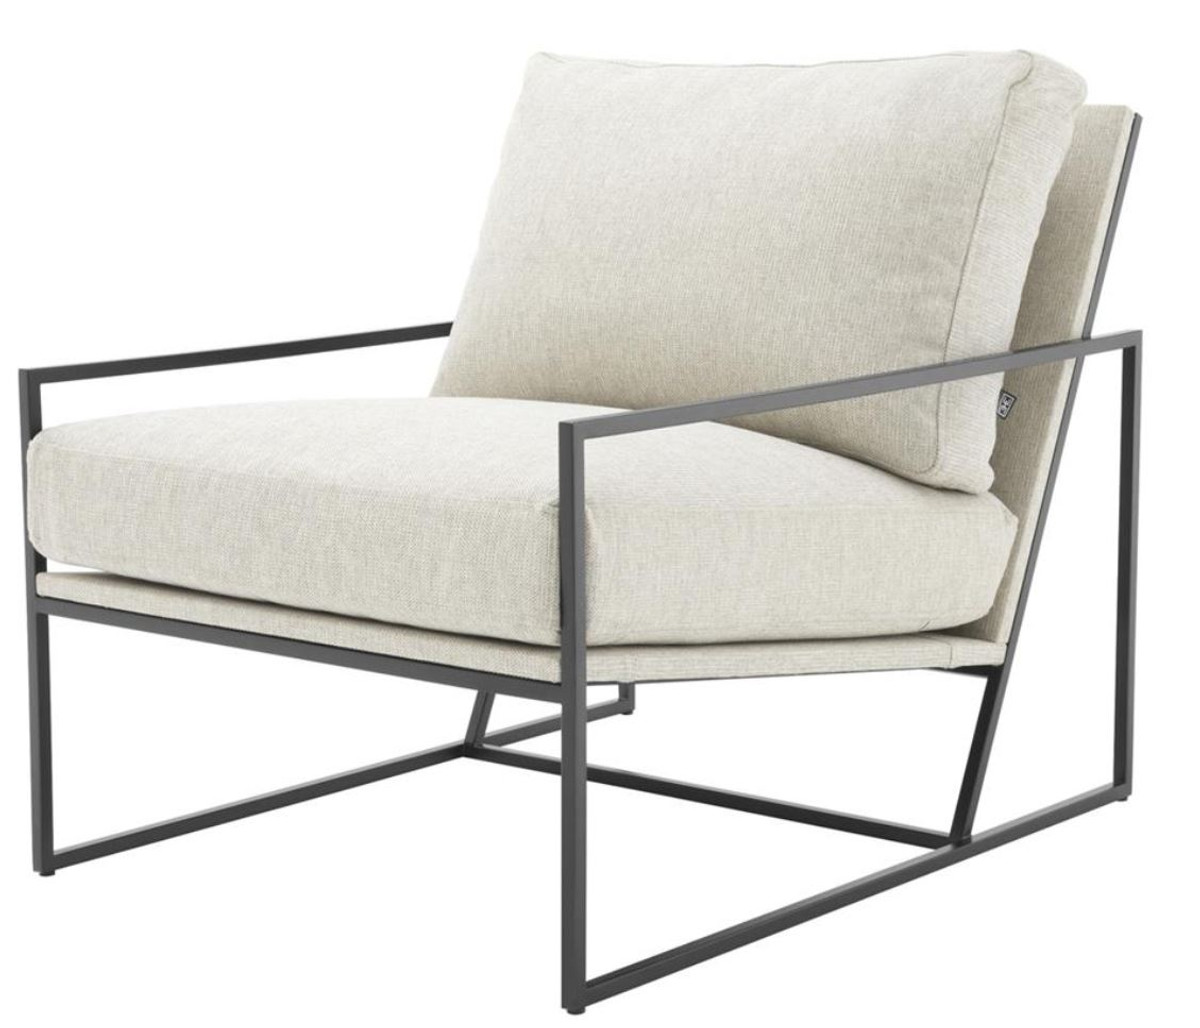 Casa padrino luxury hotel club chair 66 x 87 x h 68 cm for Sessel hellgrau